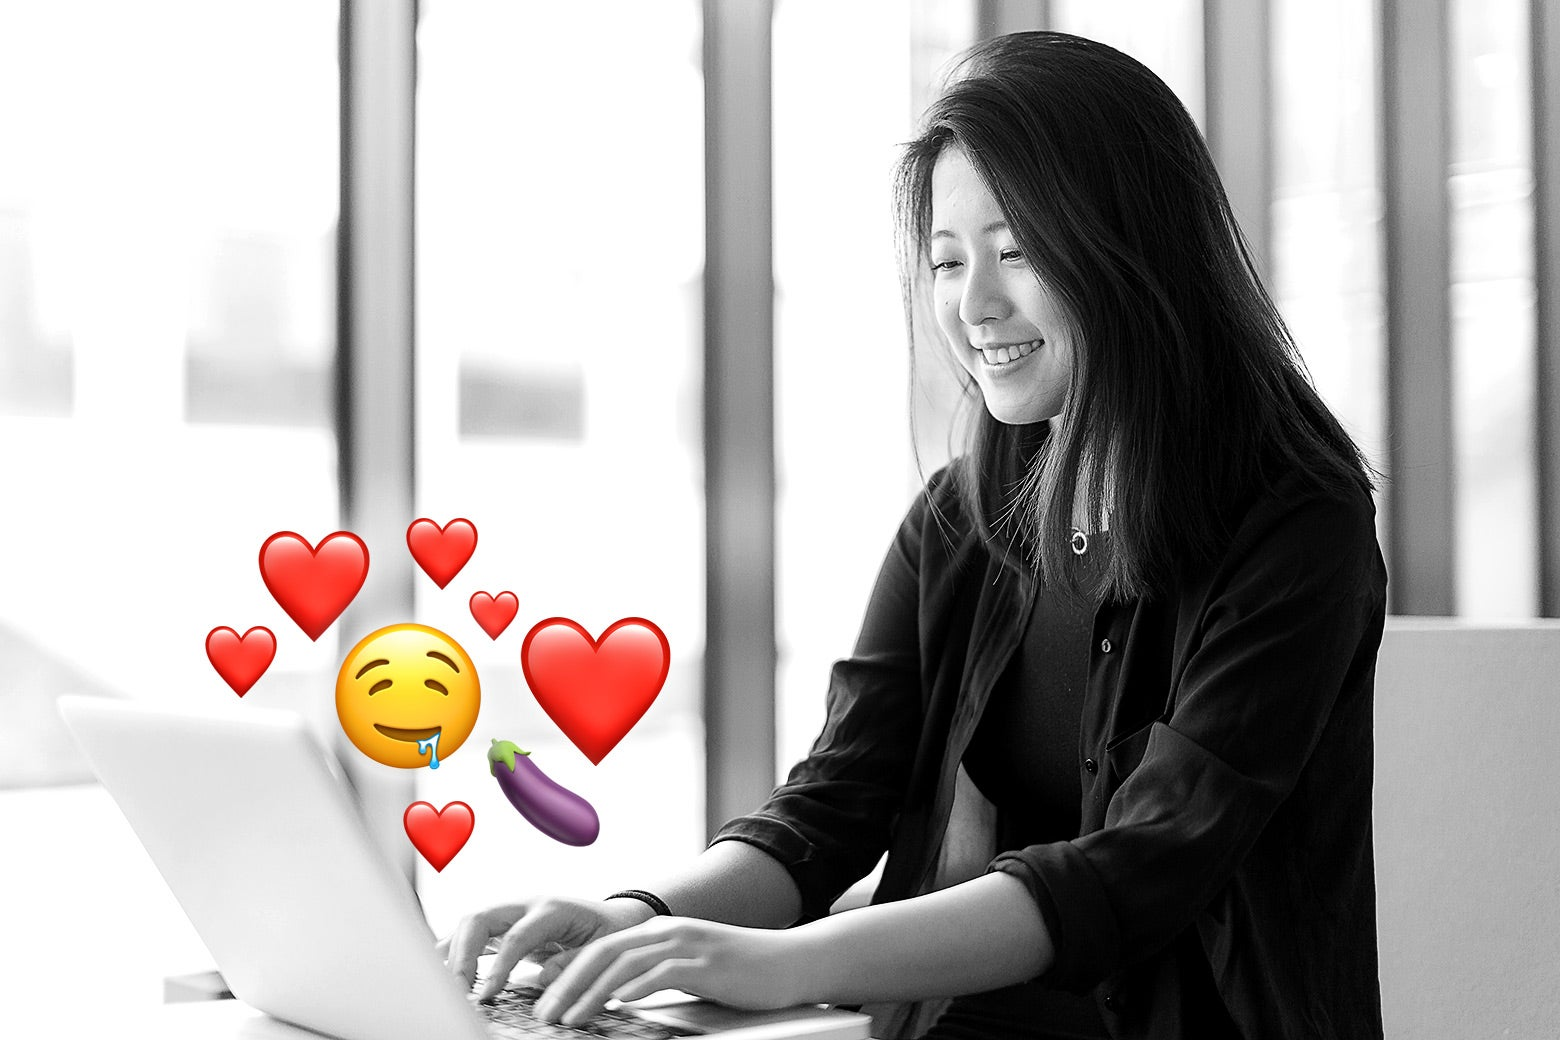 Best hookup site for busy professionals emoji